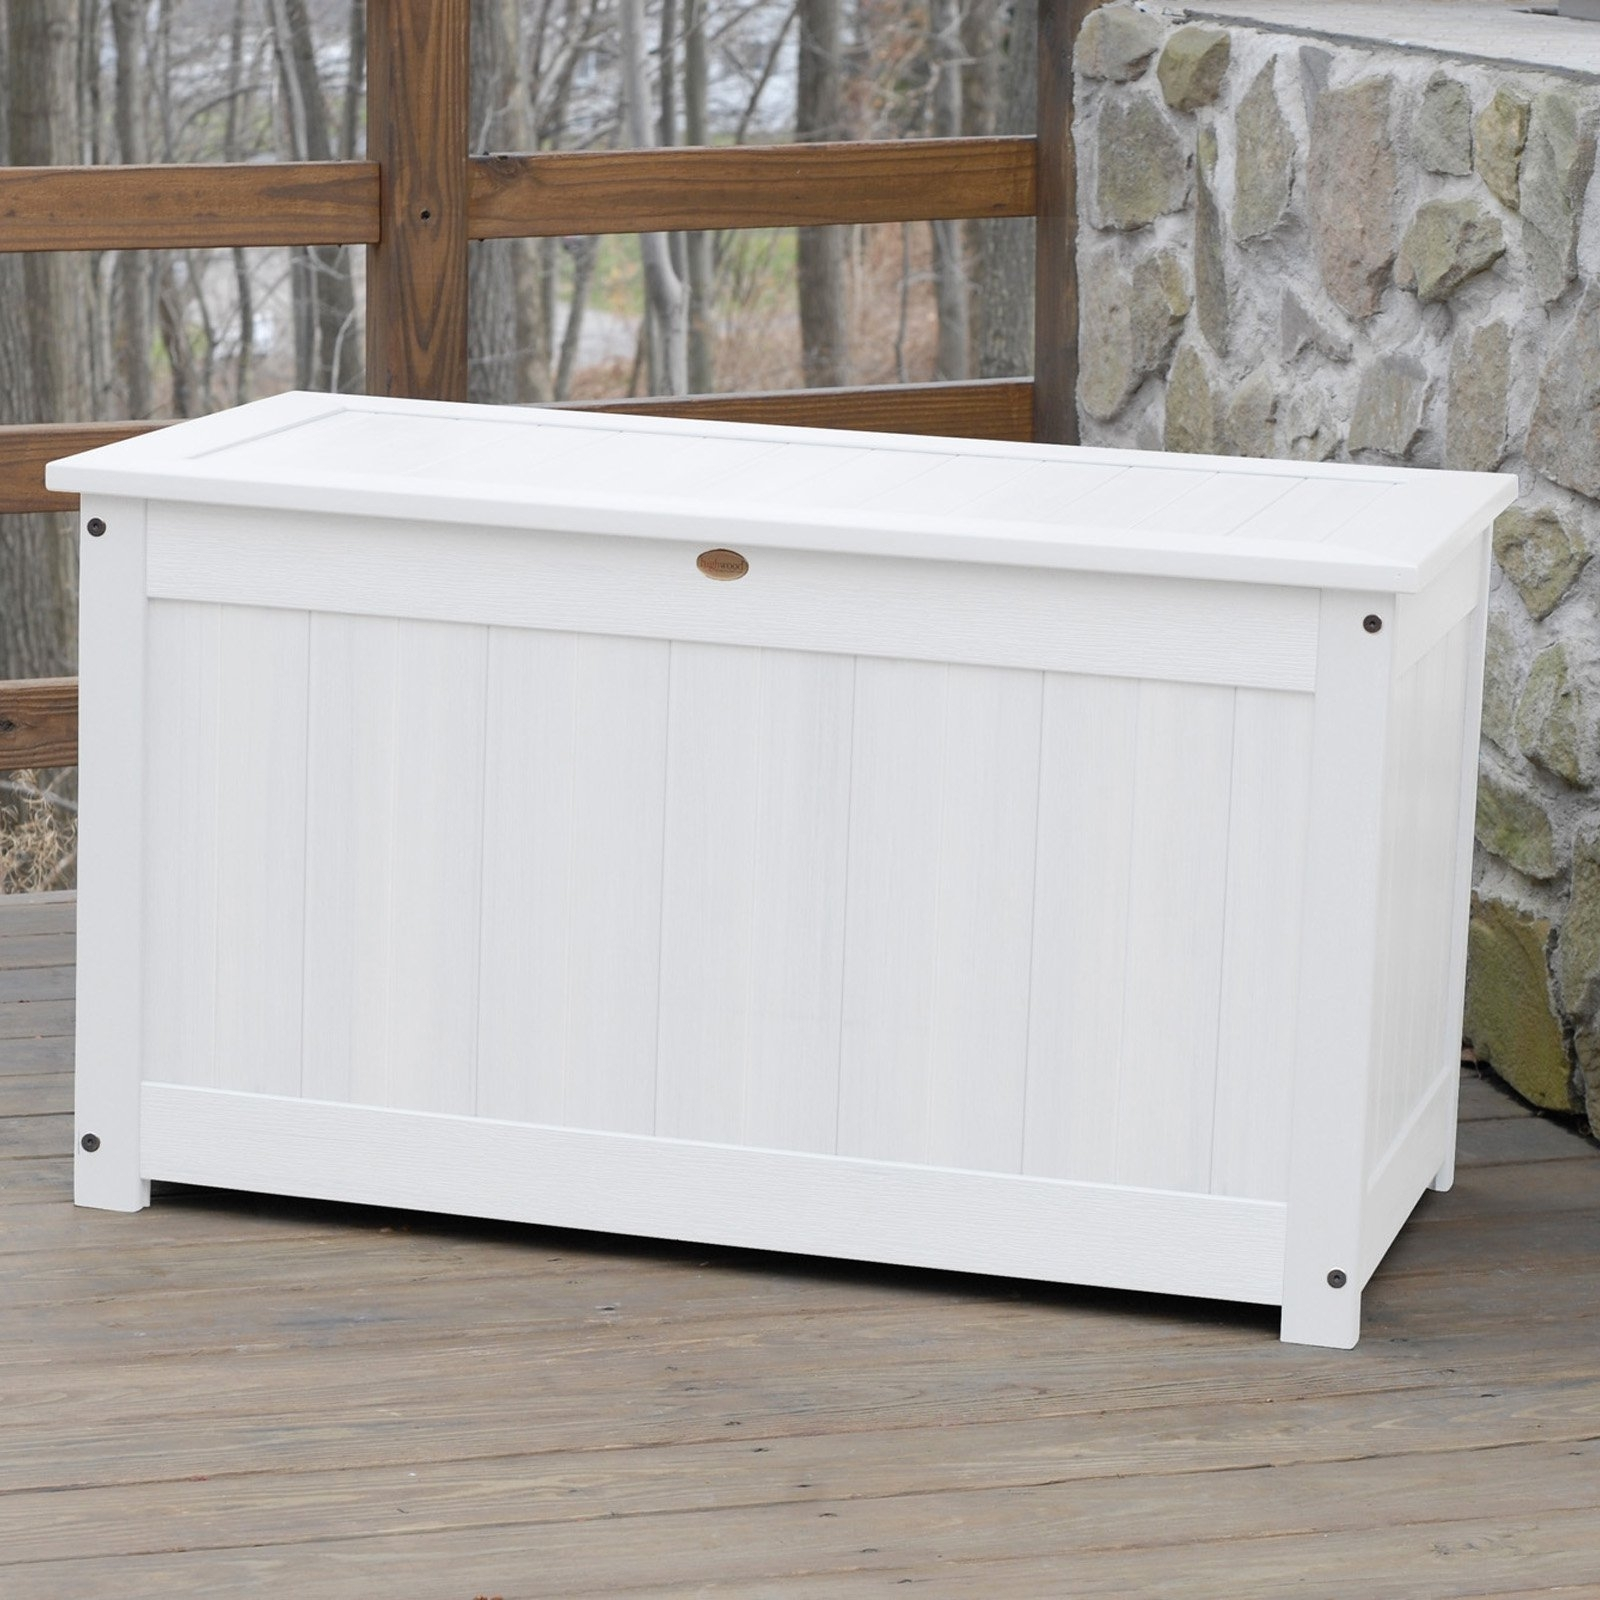 Image of: Belham Living Brighton Beach 48 In Outdoor Storage Deck Box With Pertaining To Outdoor Cushion Storage Bench Classic Outdoor Cushion Storage Bench